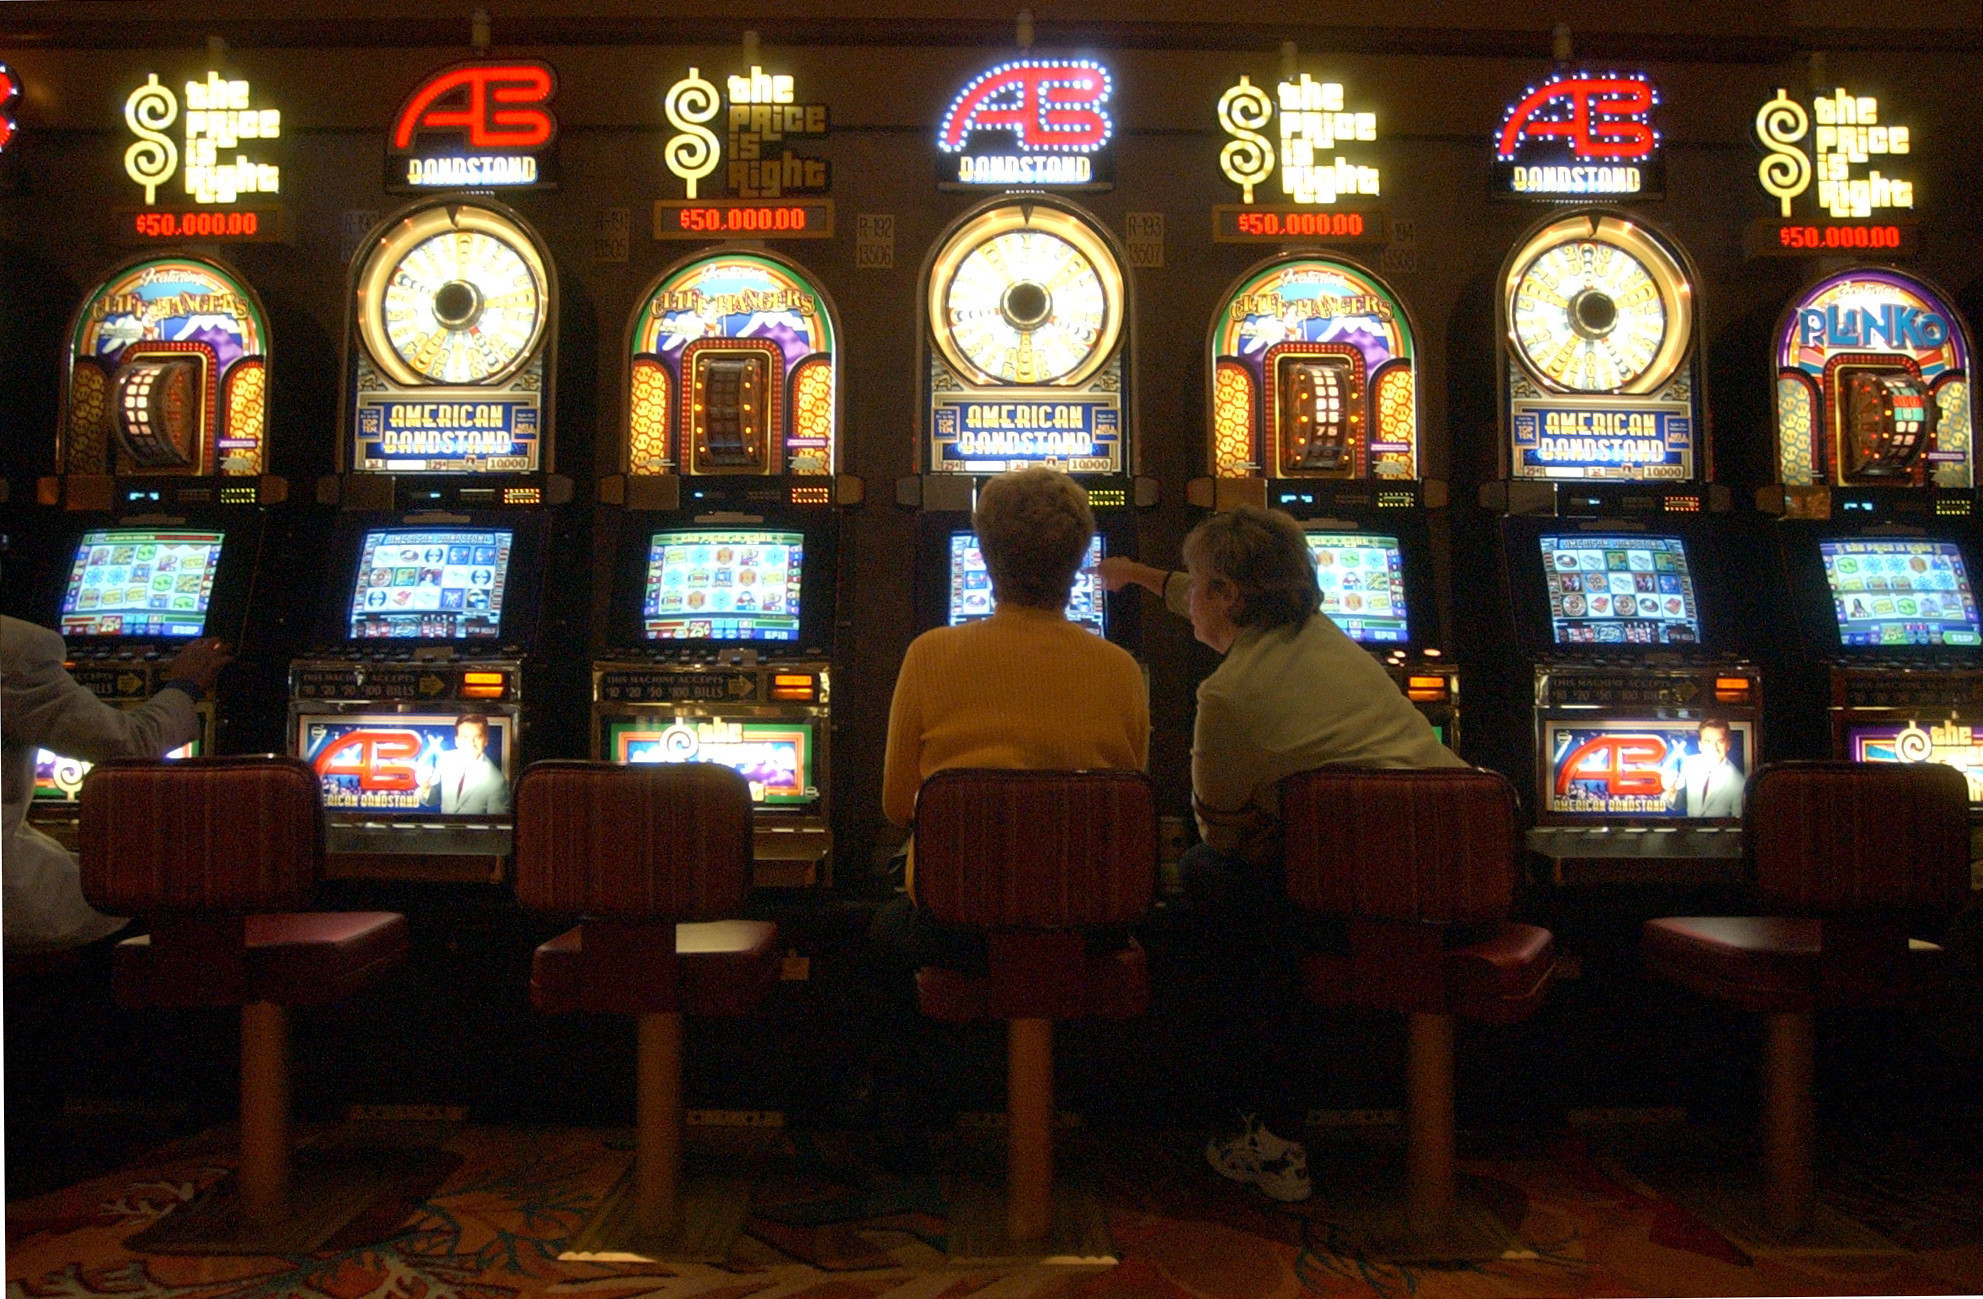 Controversial issues on state owned casinos big small gambling game